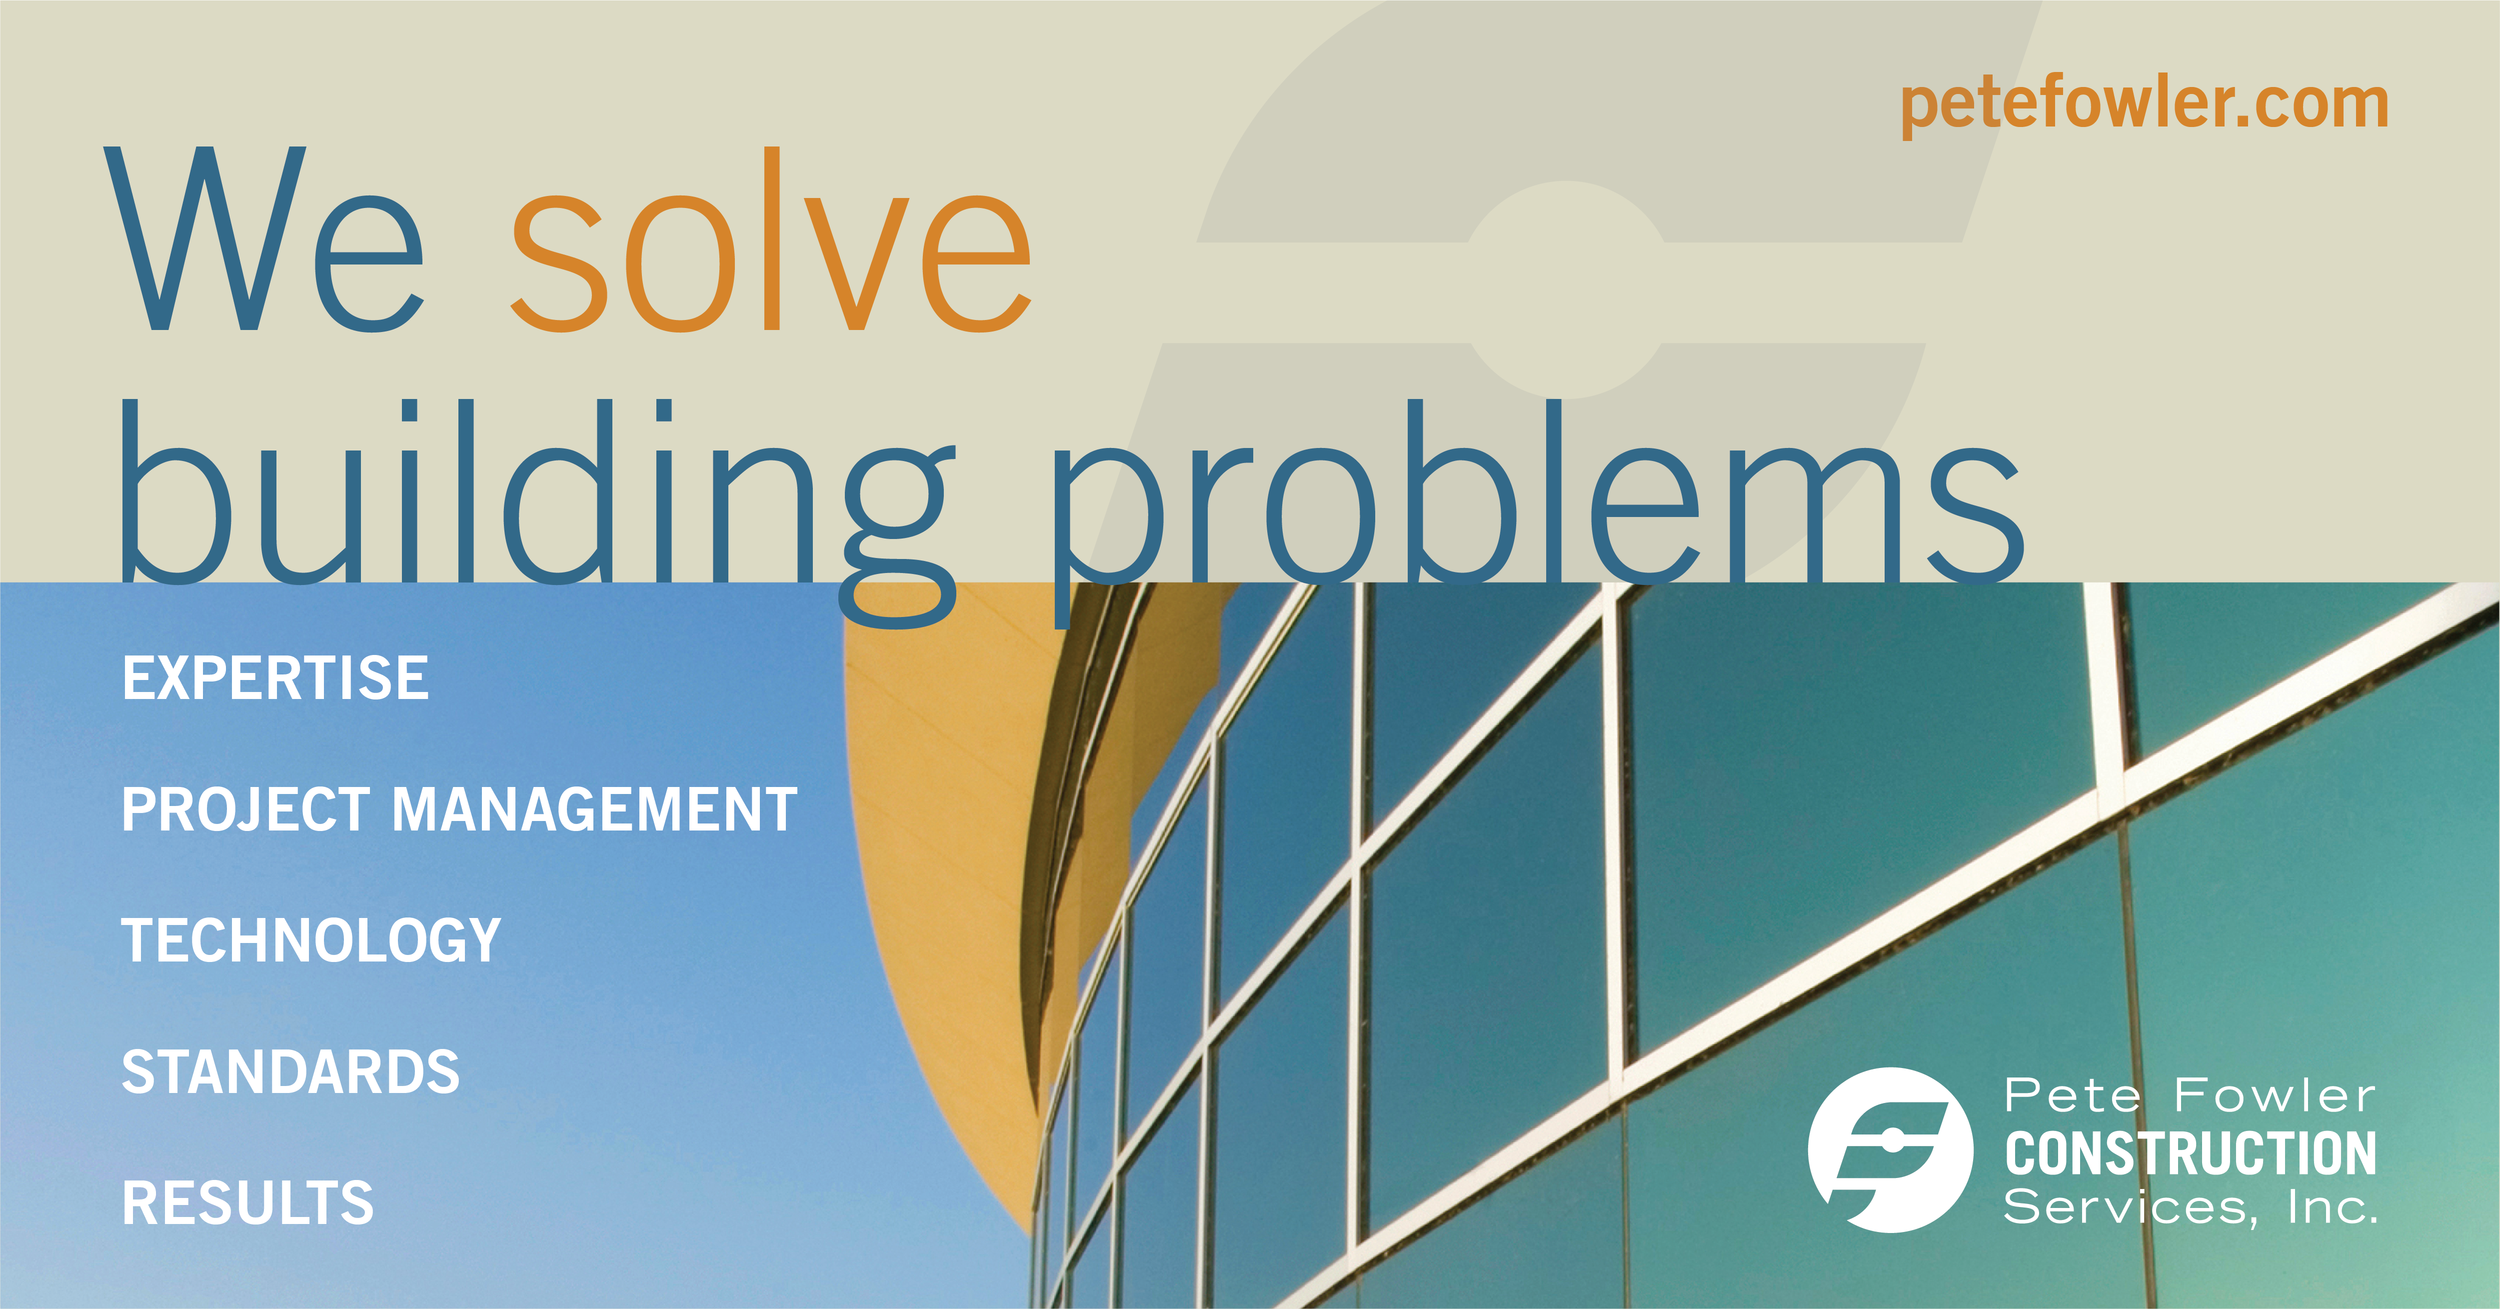 We solve building problems Results SOCIAL 2018-09-28 C.png